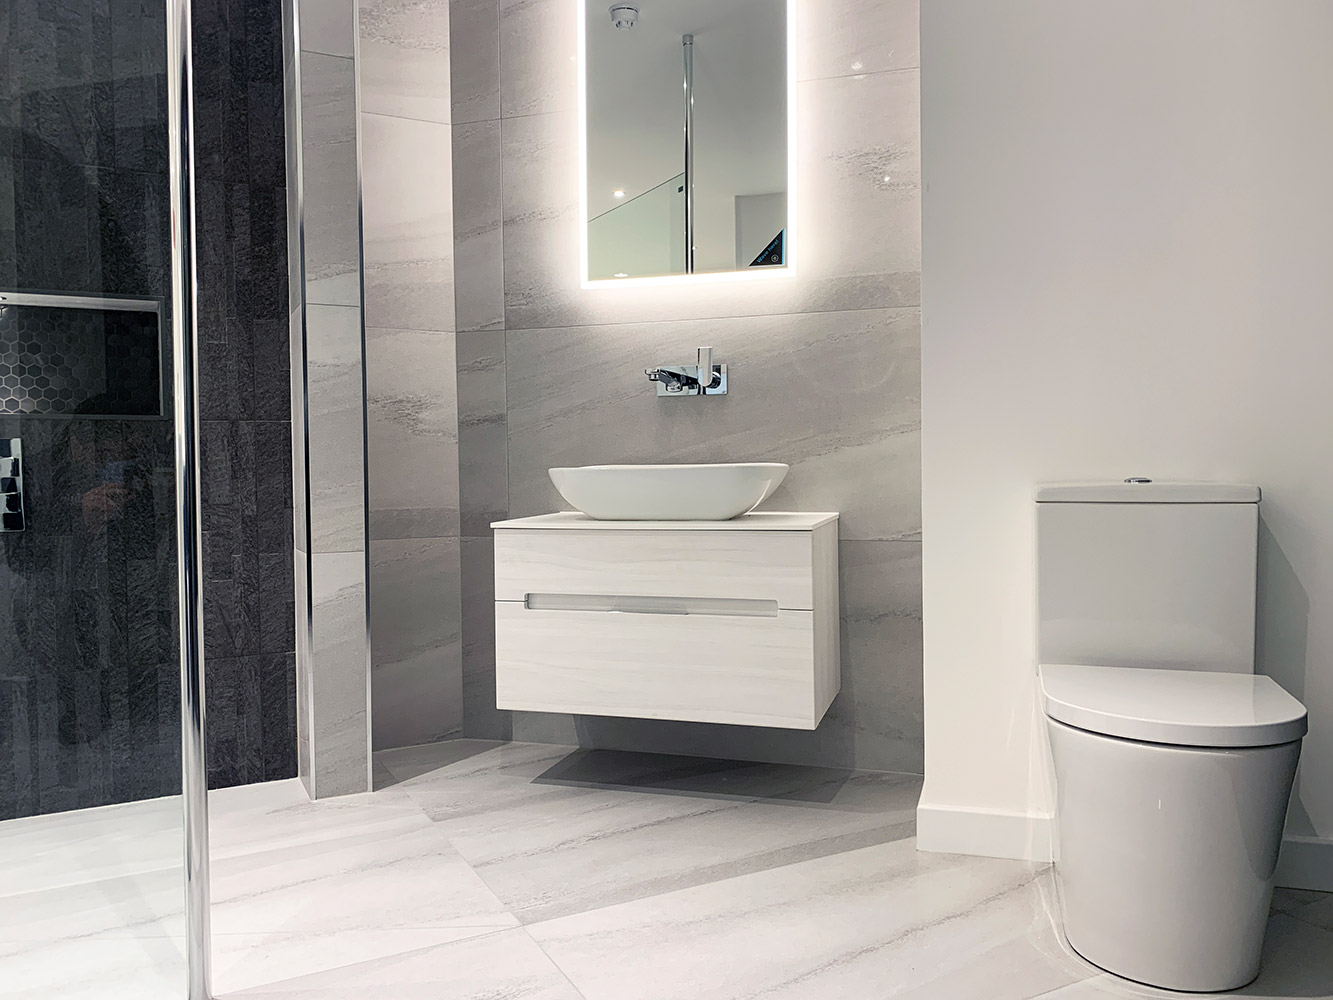 Bathroom Showroom Aberdeen: Bathroom Gallery 6, Photo 7